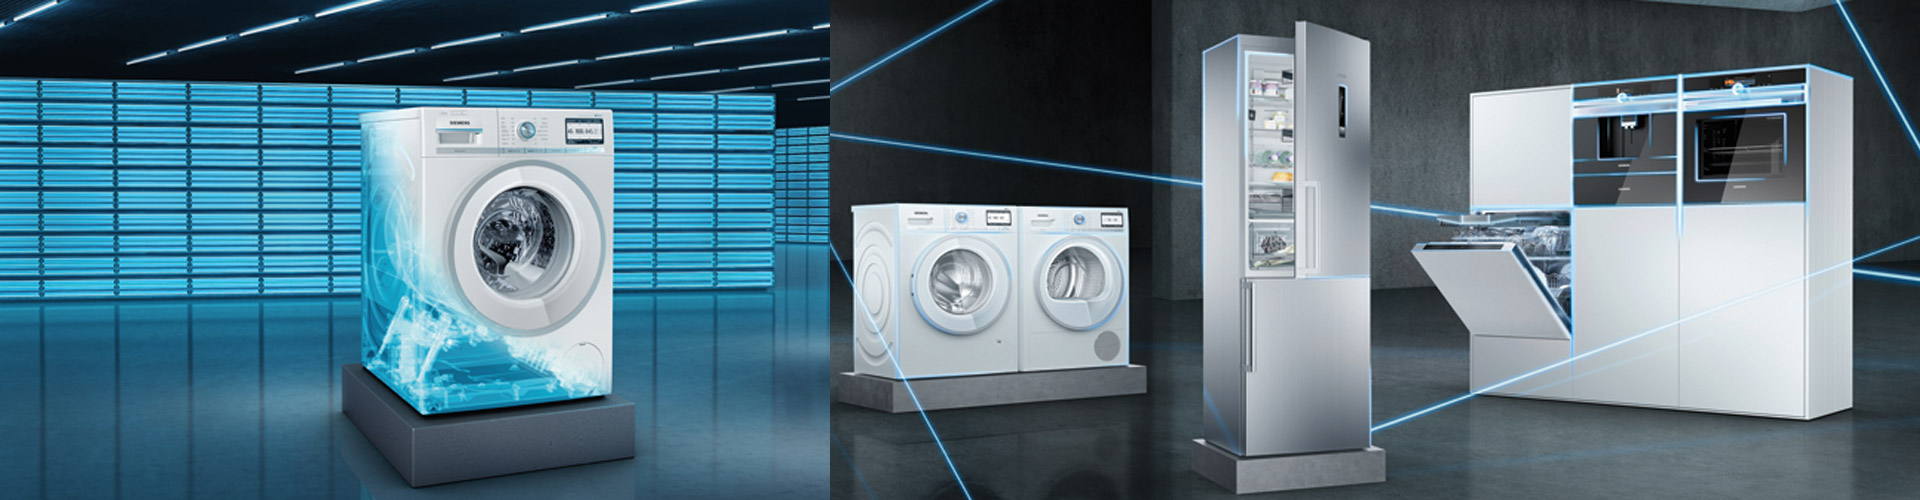 Siemens - CMC Electric - Buy Electrical Appliances in Cyprus